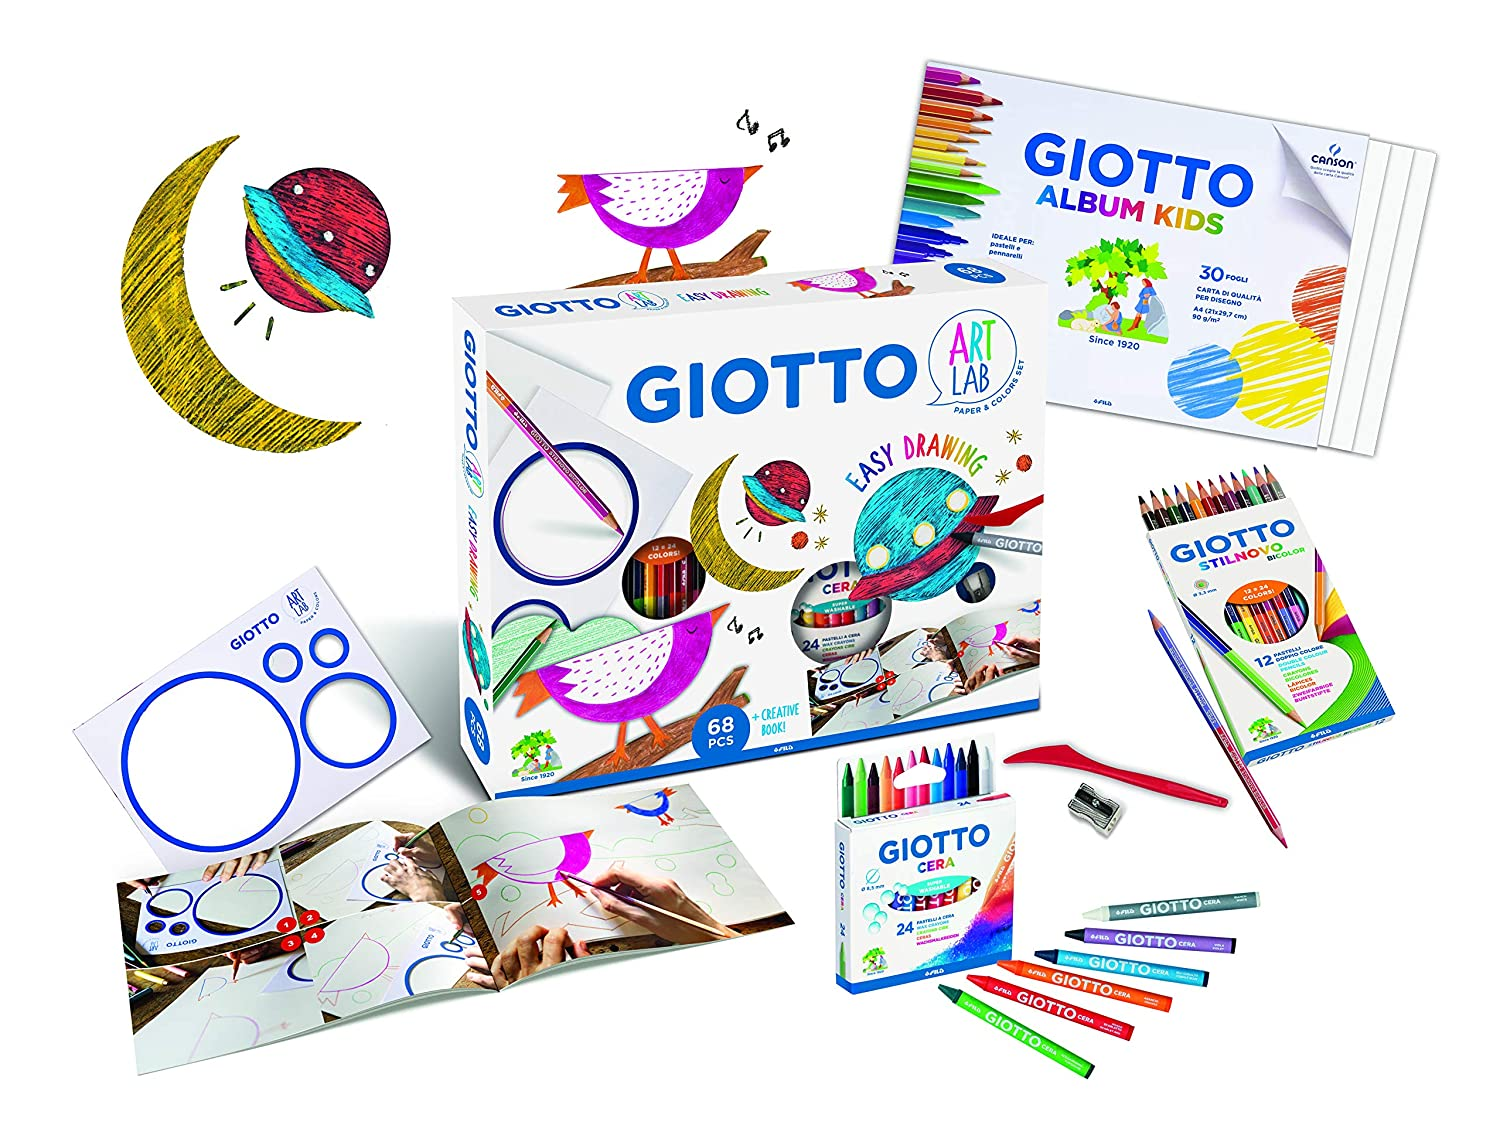 GIOTTO ART LAB EASY DRAWING SET,581400